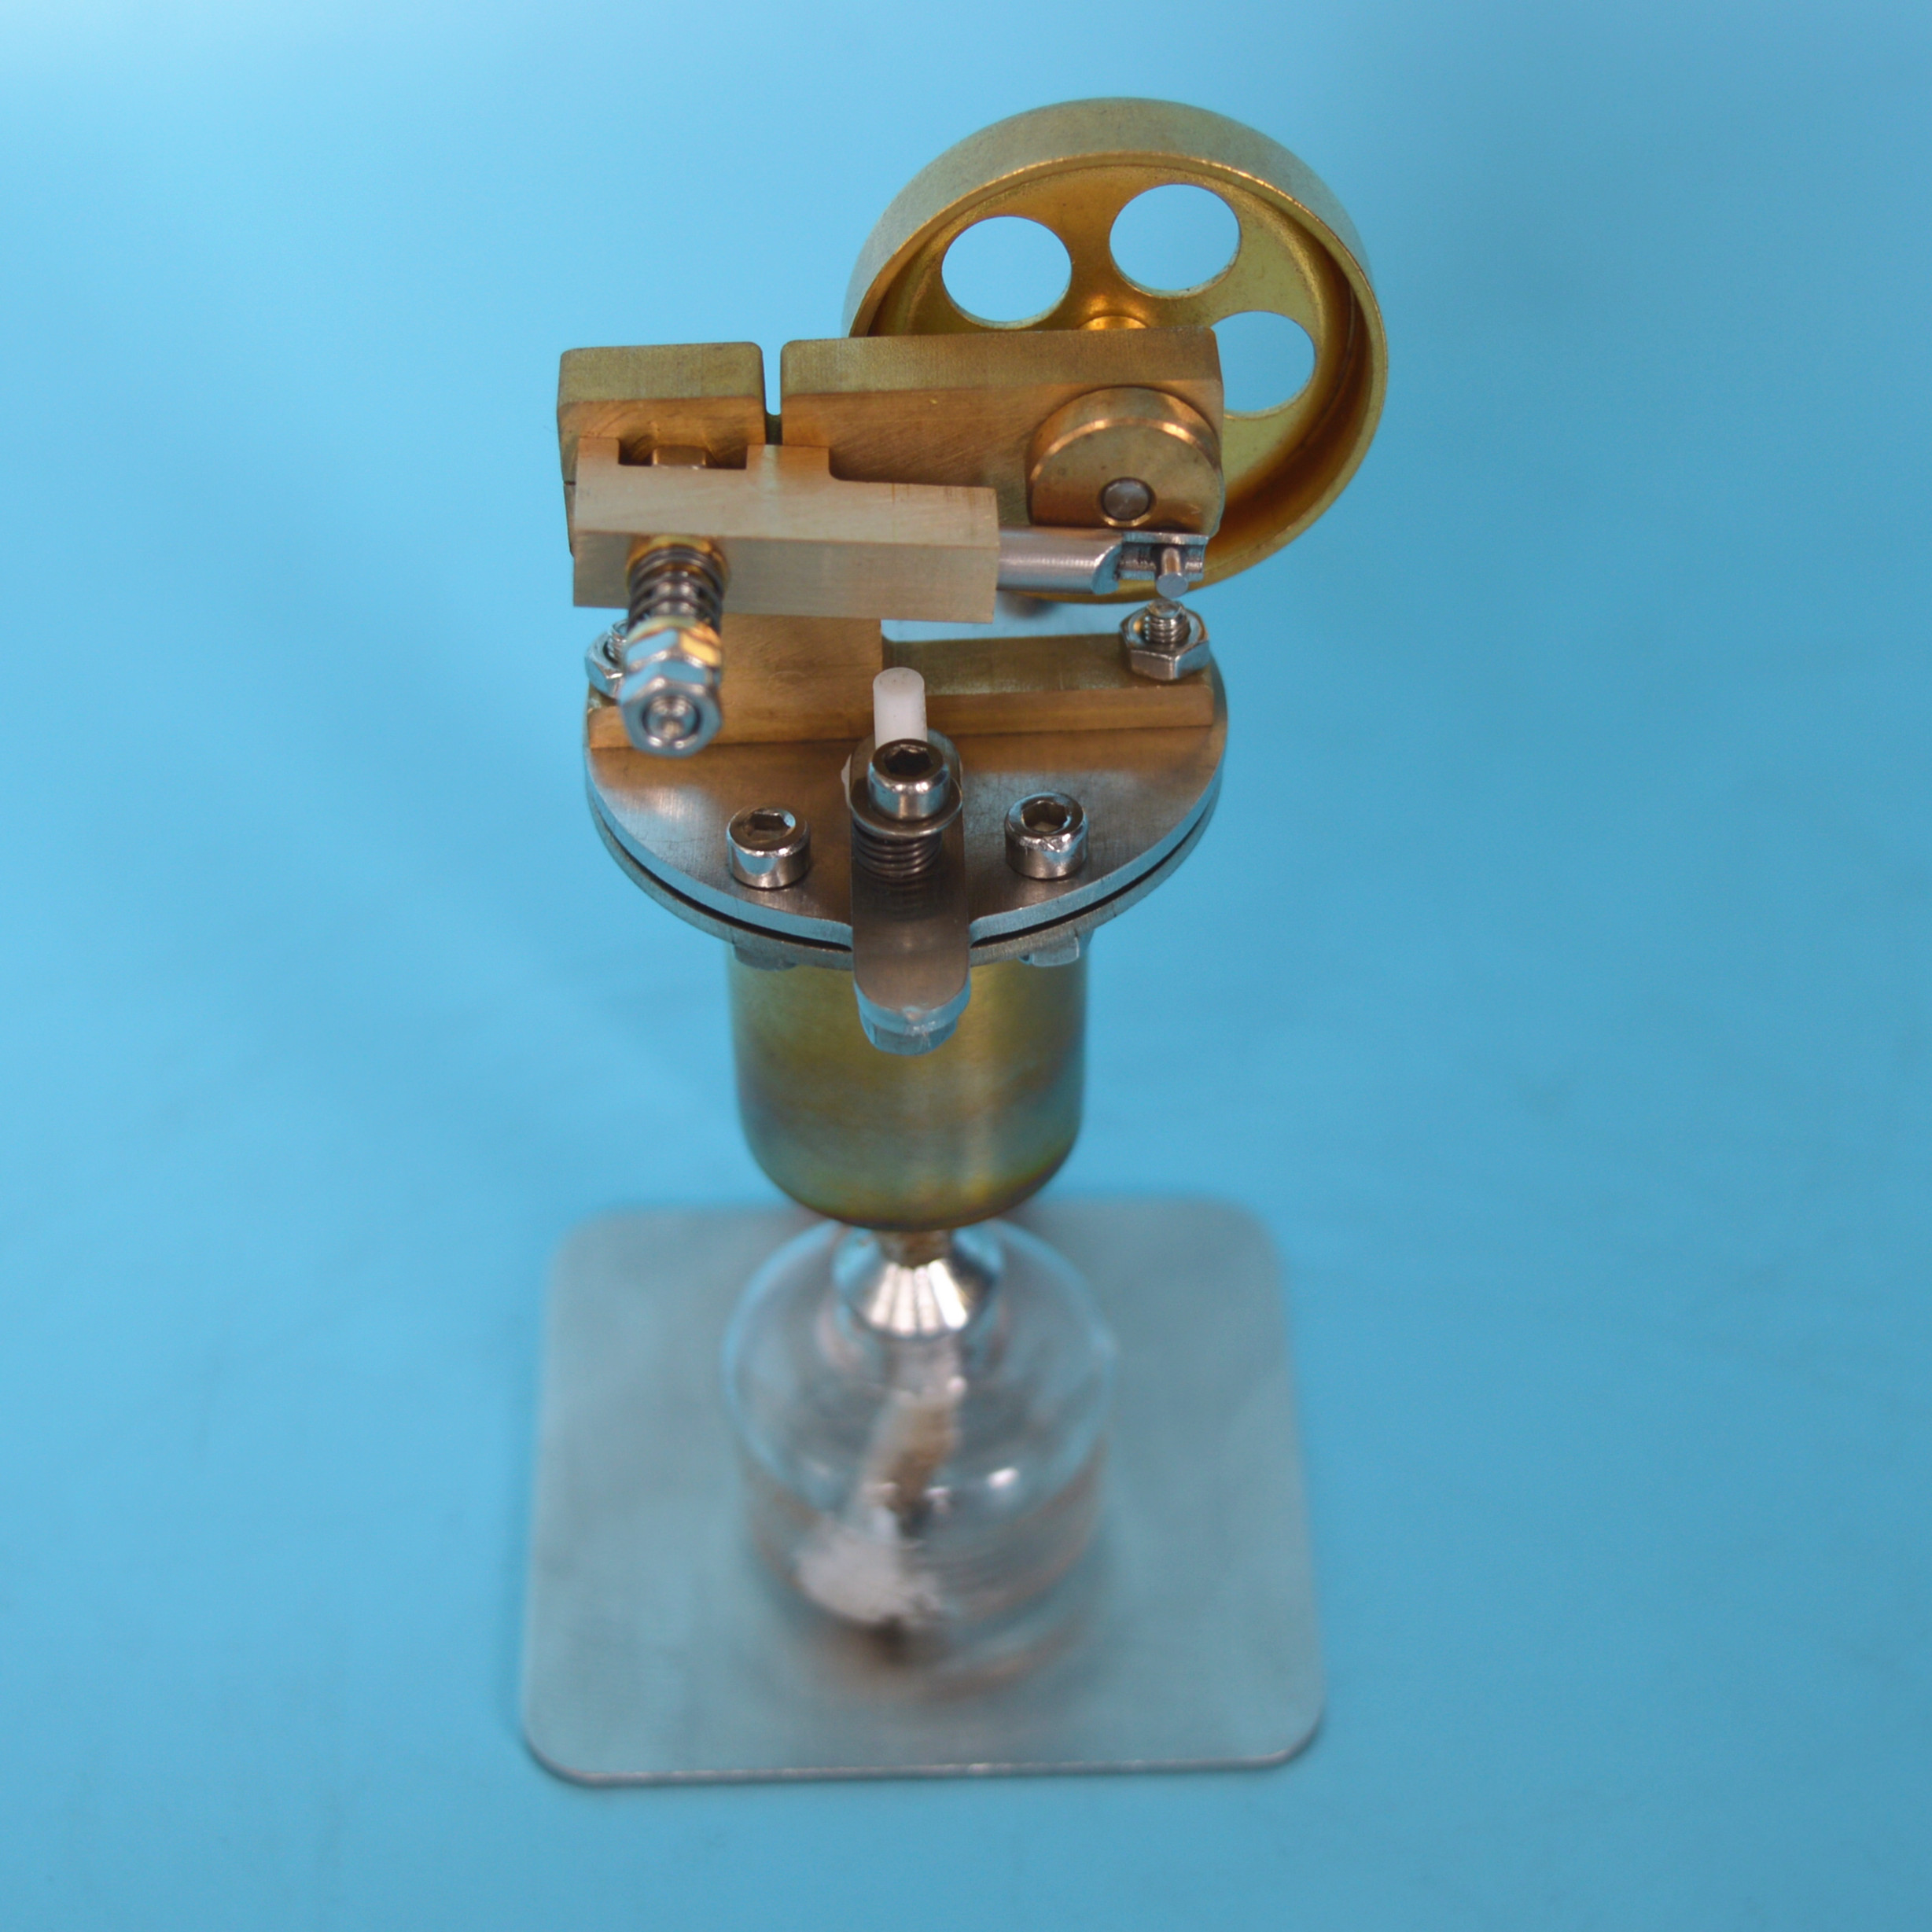 Steam Engine Model Mini All Copper Boiler Small Steam Engine Alcohol Lamp Heating QX-M-ZQJ-06 steam ключи за смс